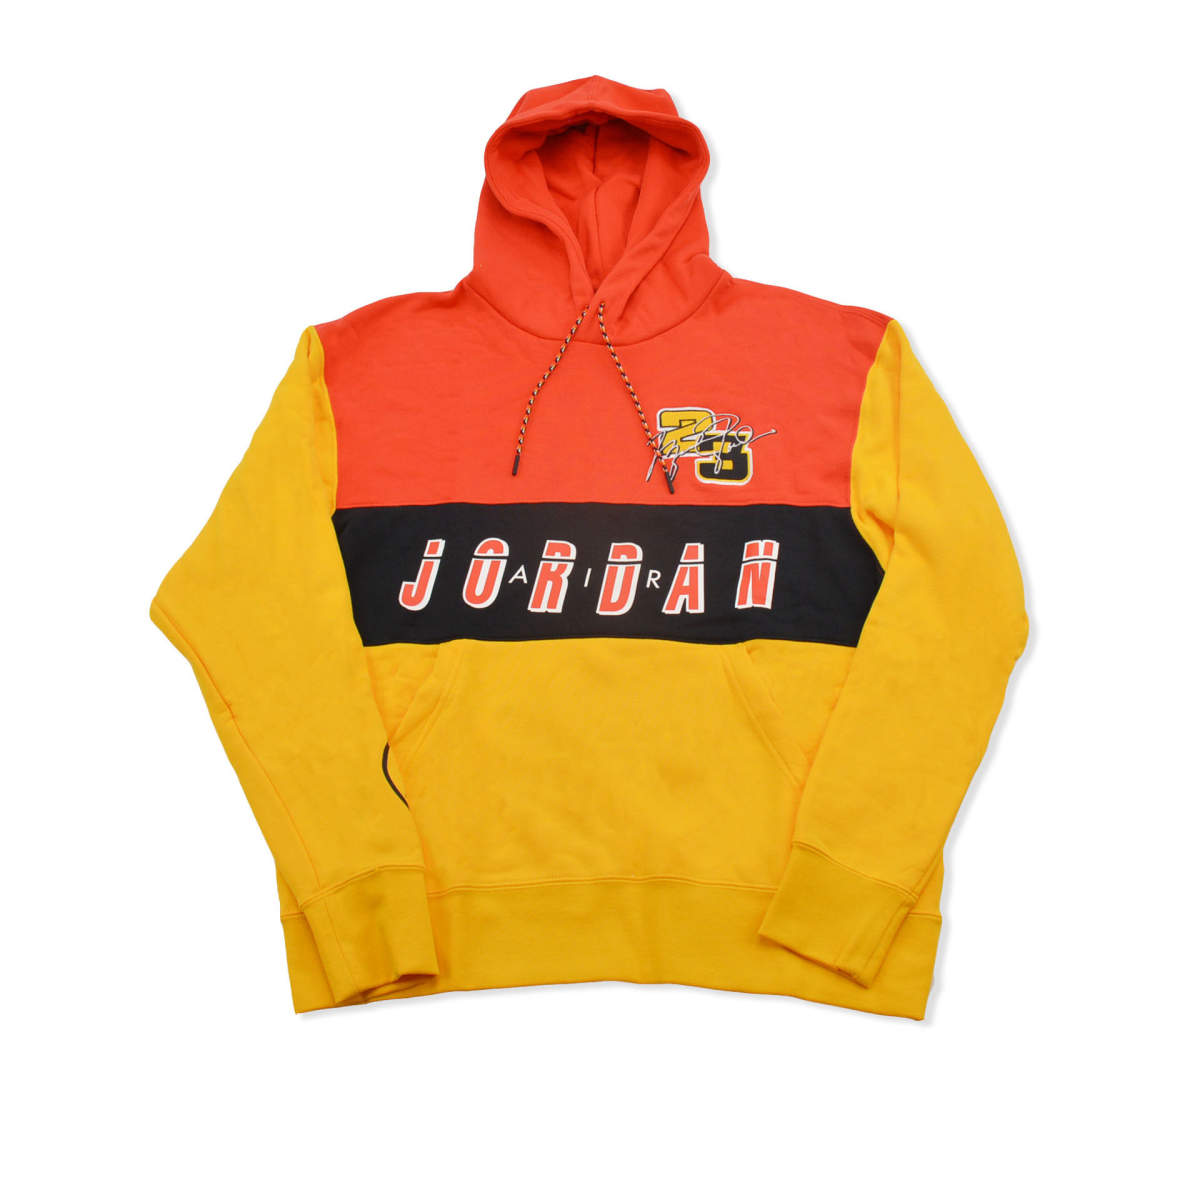 Sport dna hoodie chile red